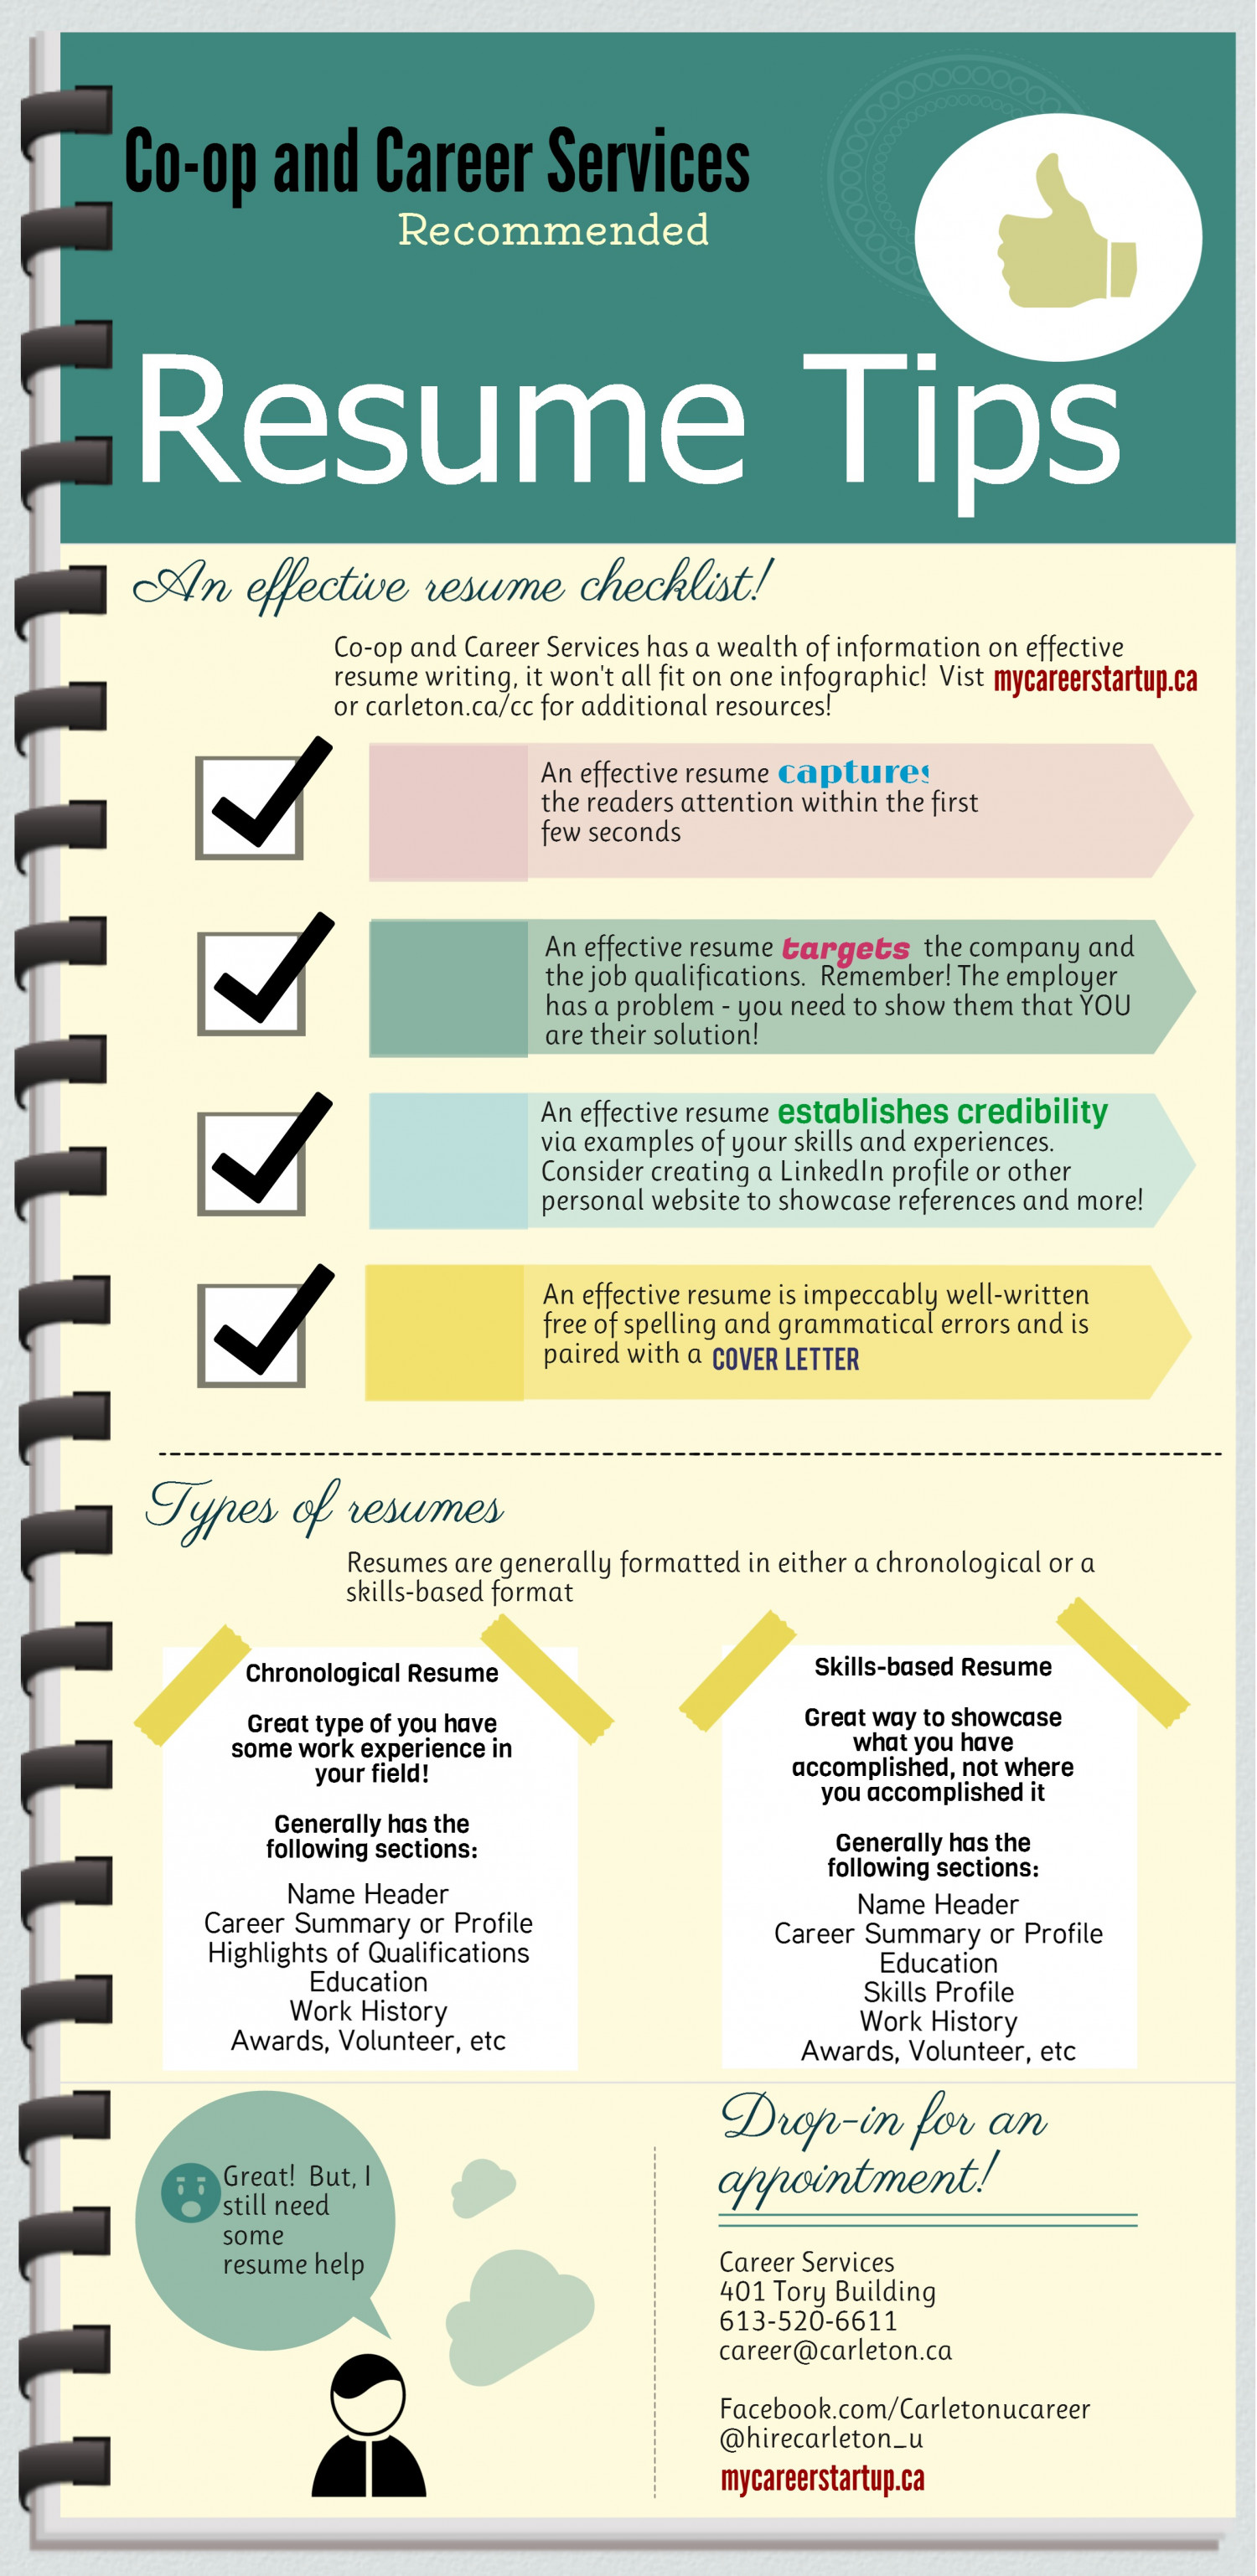 Nice Resume Tips: An Effective Resume Checklists Infographic Pertaining To Resume Tips